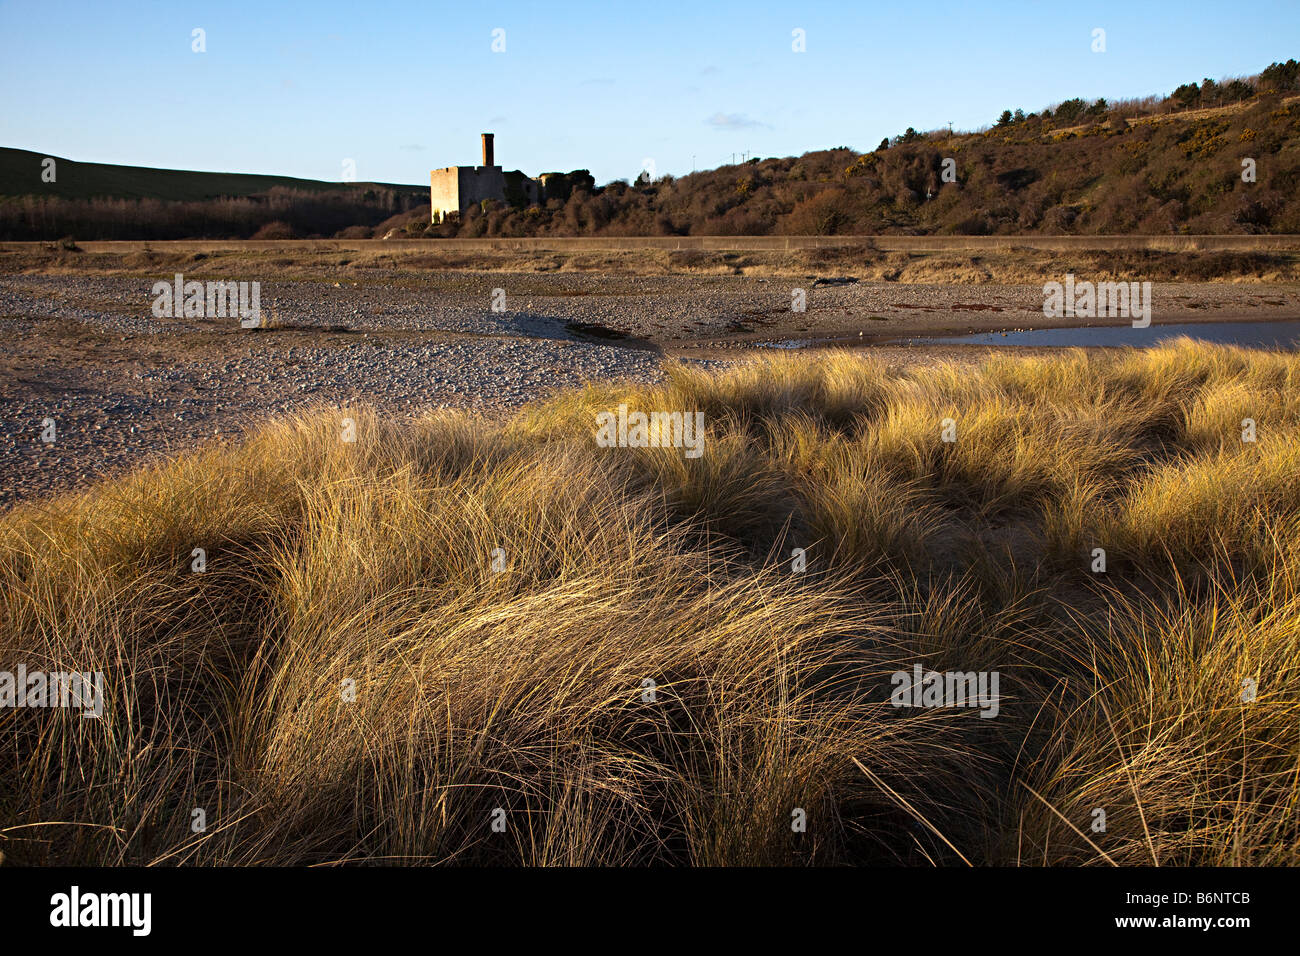 Marram grass dunes with ruined remains of pebble limekilns opened in 1888 East Aberthaw nature reserve Wales UK - Stock Image